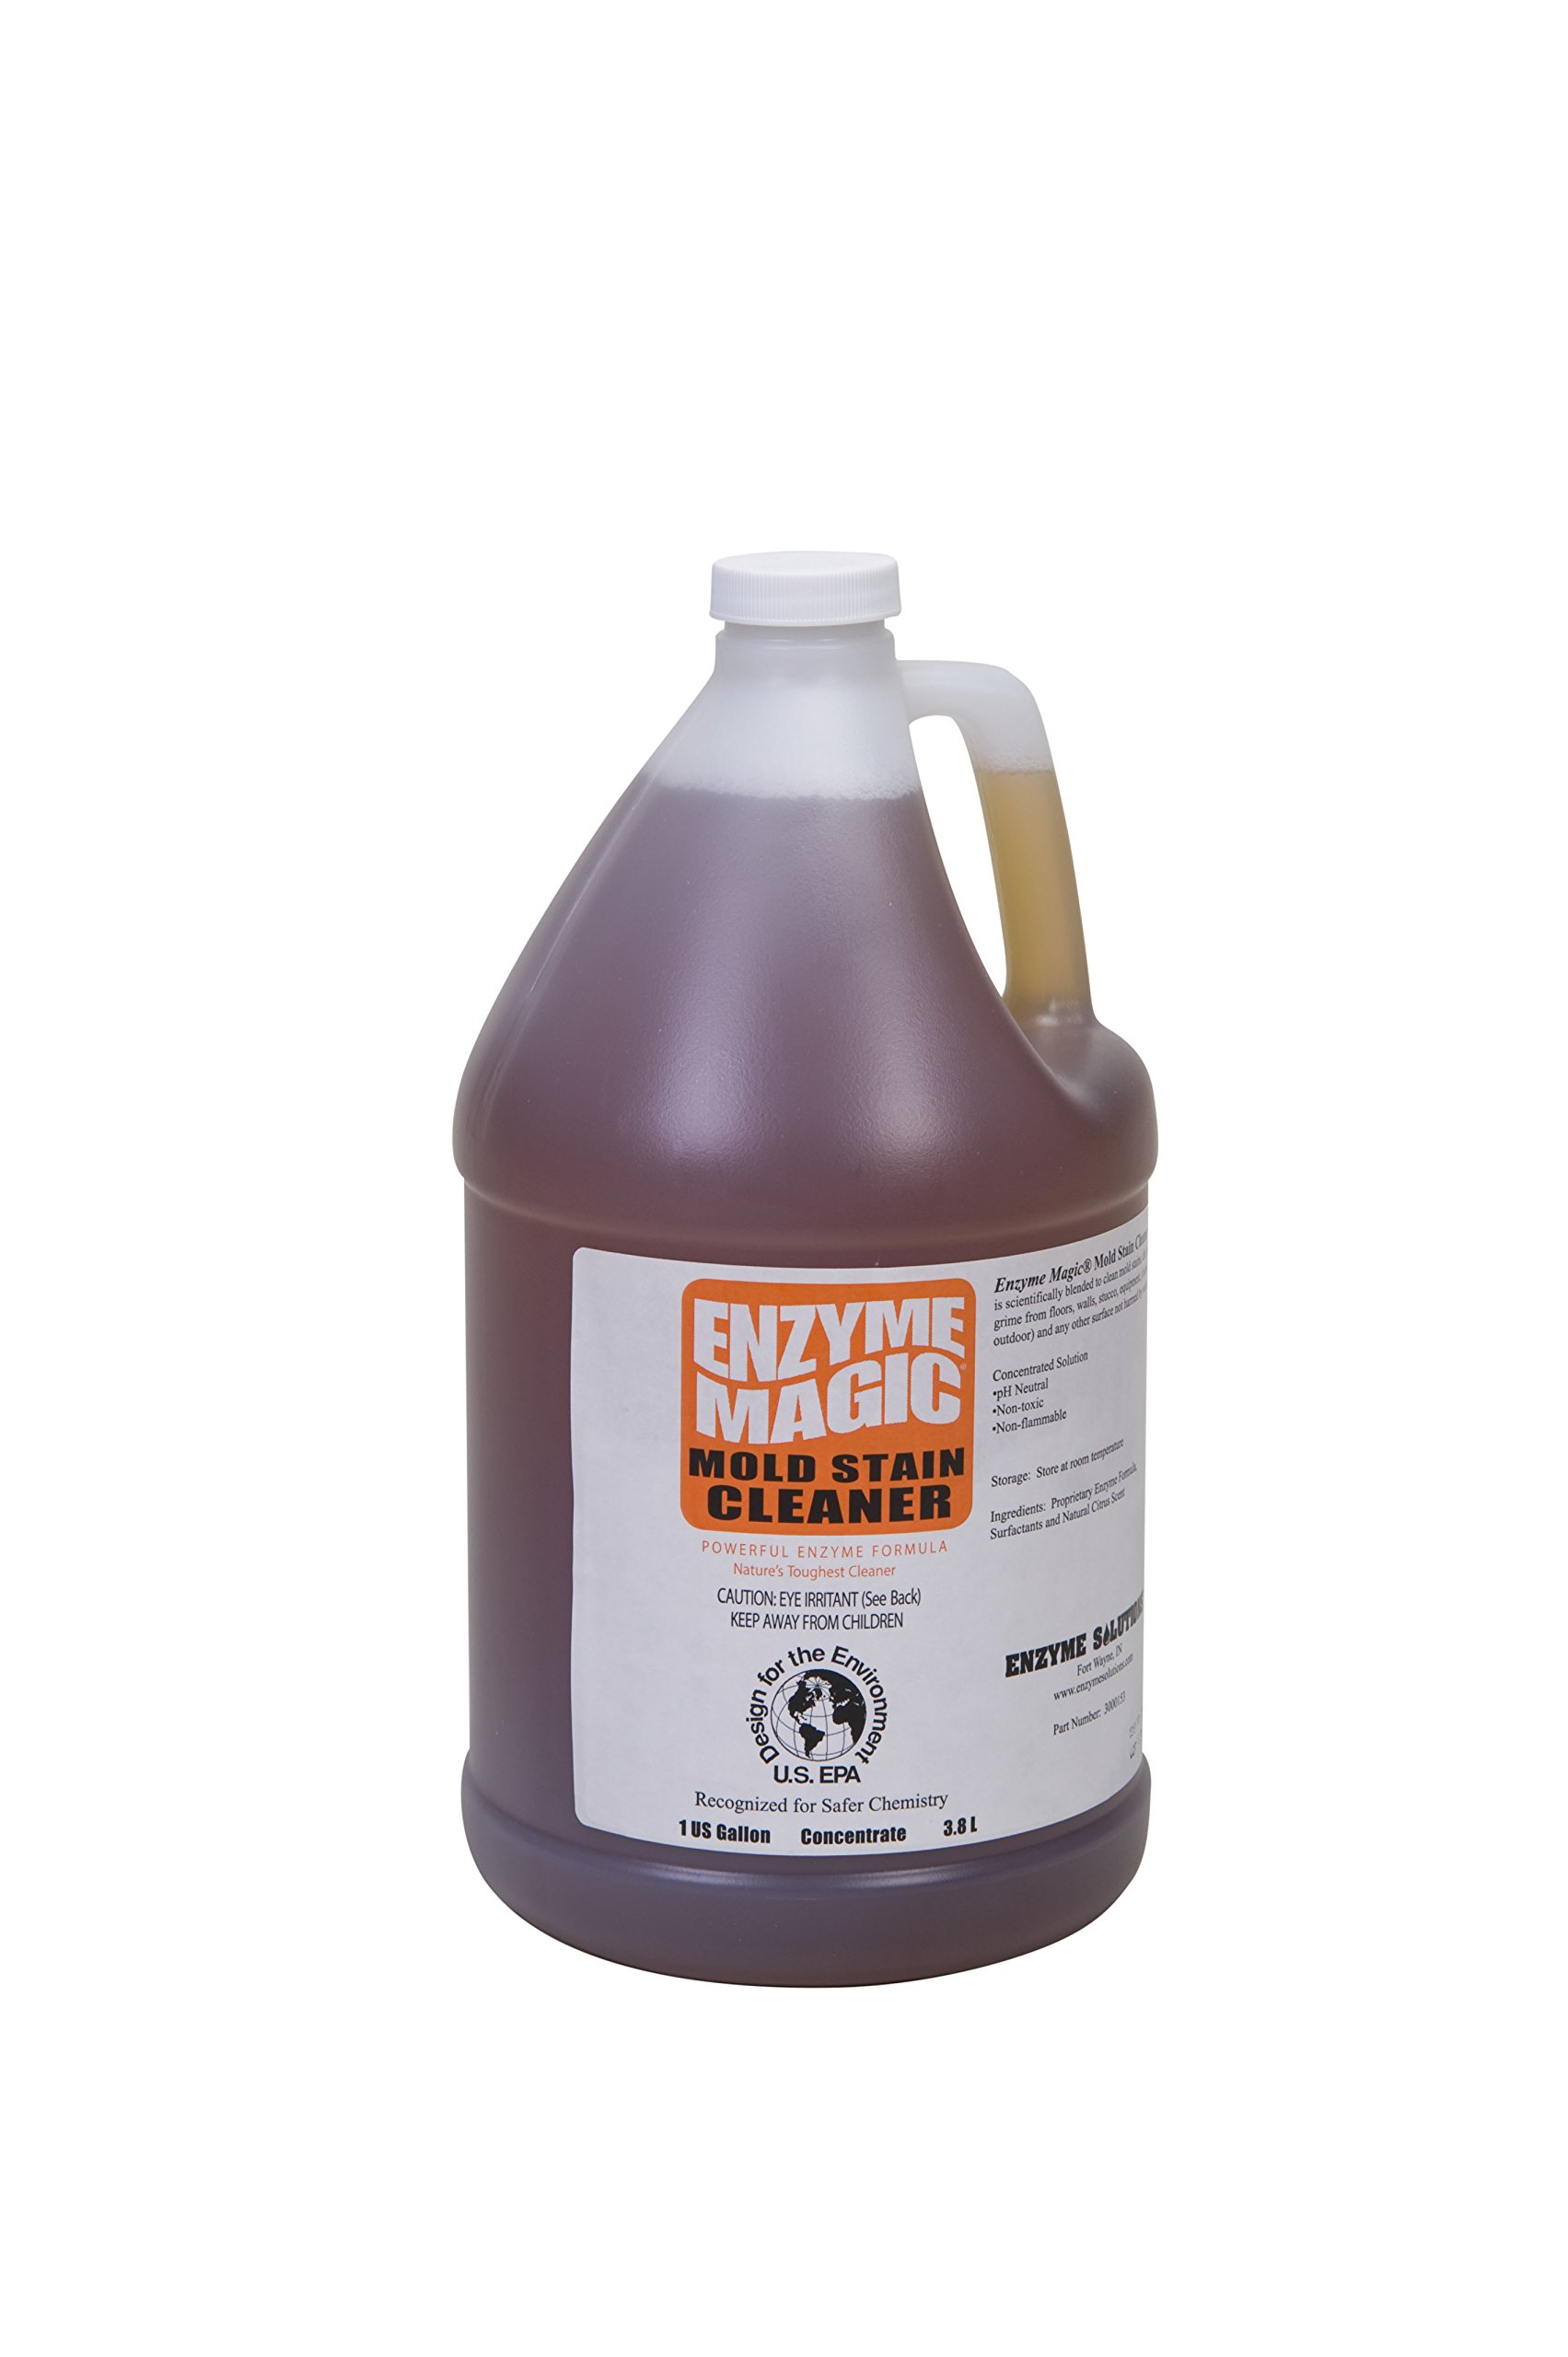 ENZYME MAGIC Mold Stain Cleaner 1 Gal Concentrate (Makes 64-gal) Enzyme Based Mold/Mildew Stain Remover, Best to Clean Grout, Tile, Wall, Bathroom. Non-Toxic Indoor/Outdoor Cleaner (EPA Safer Choice)